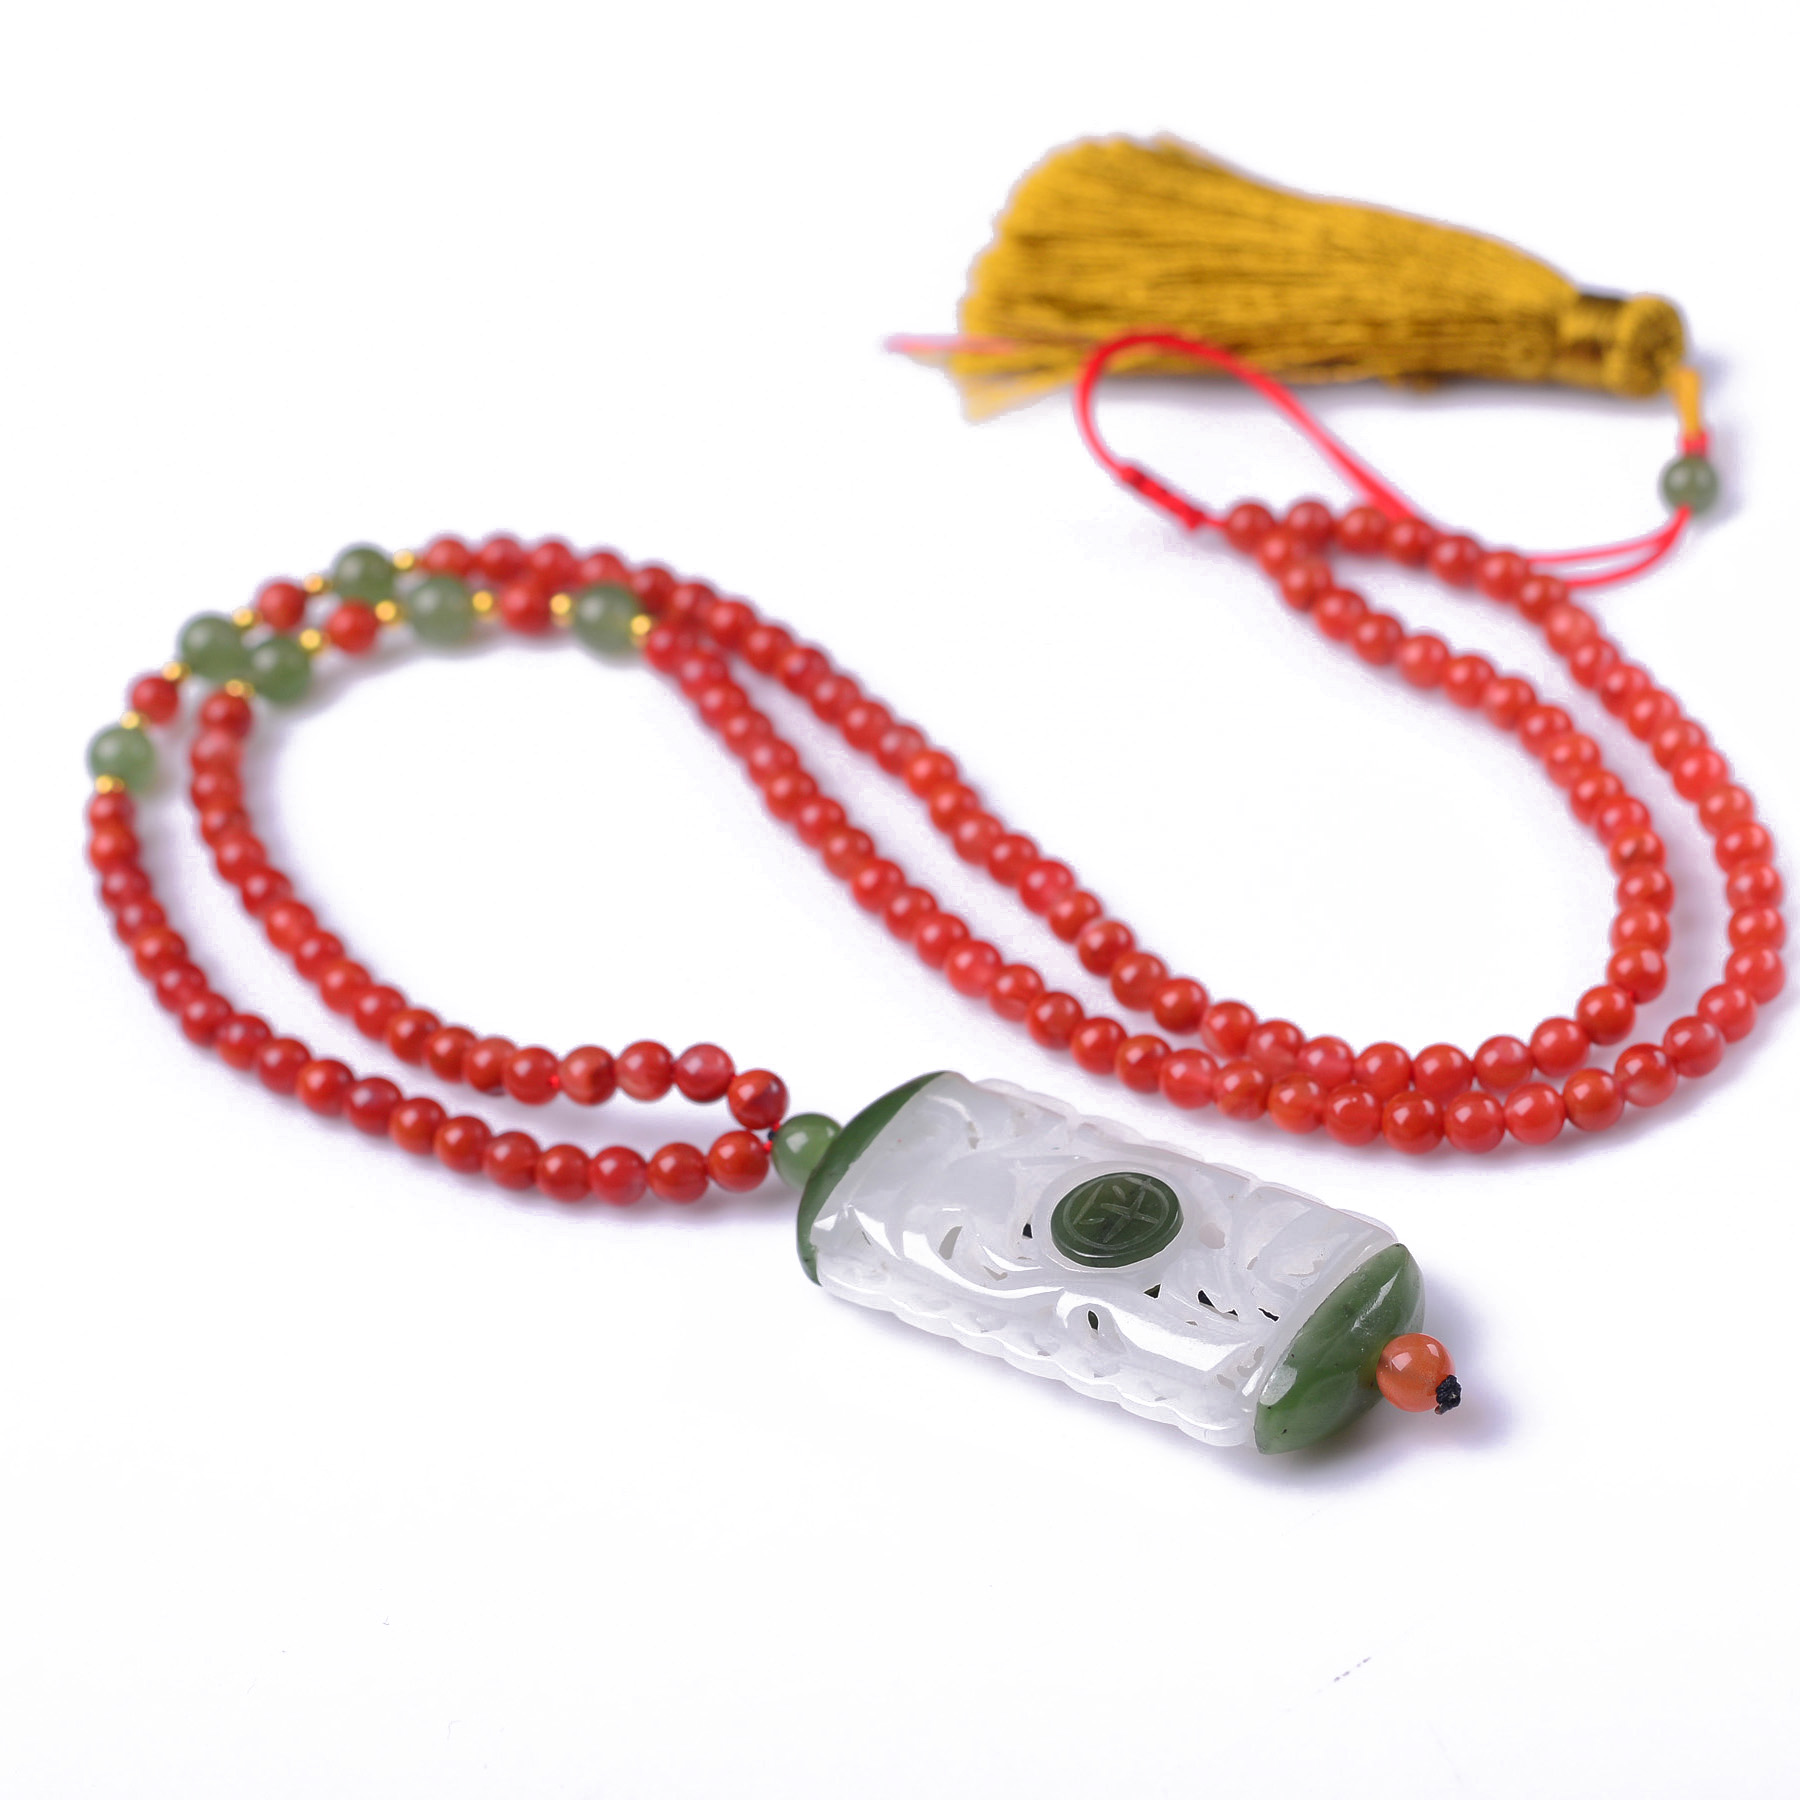 Handmade Authentic Hetian Crystal Necklace Pendants handmade authentic hetian crystal budda bracelets